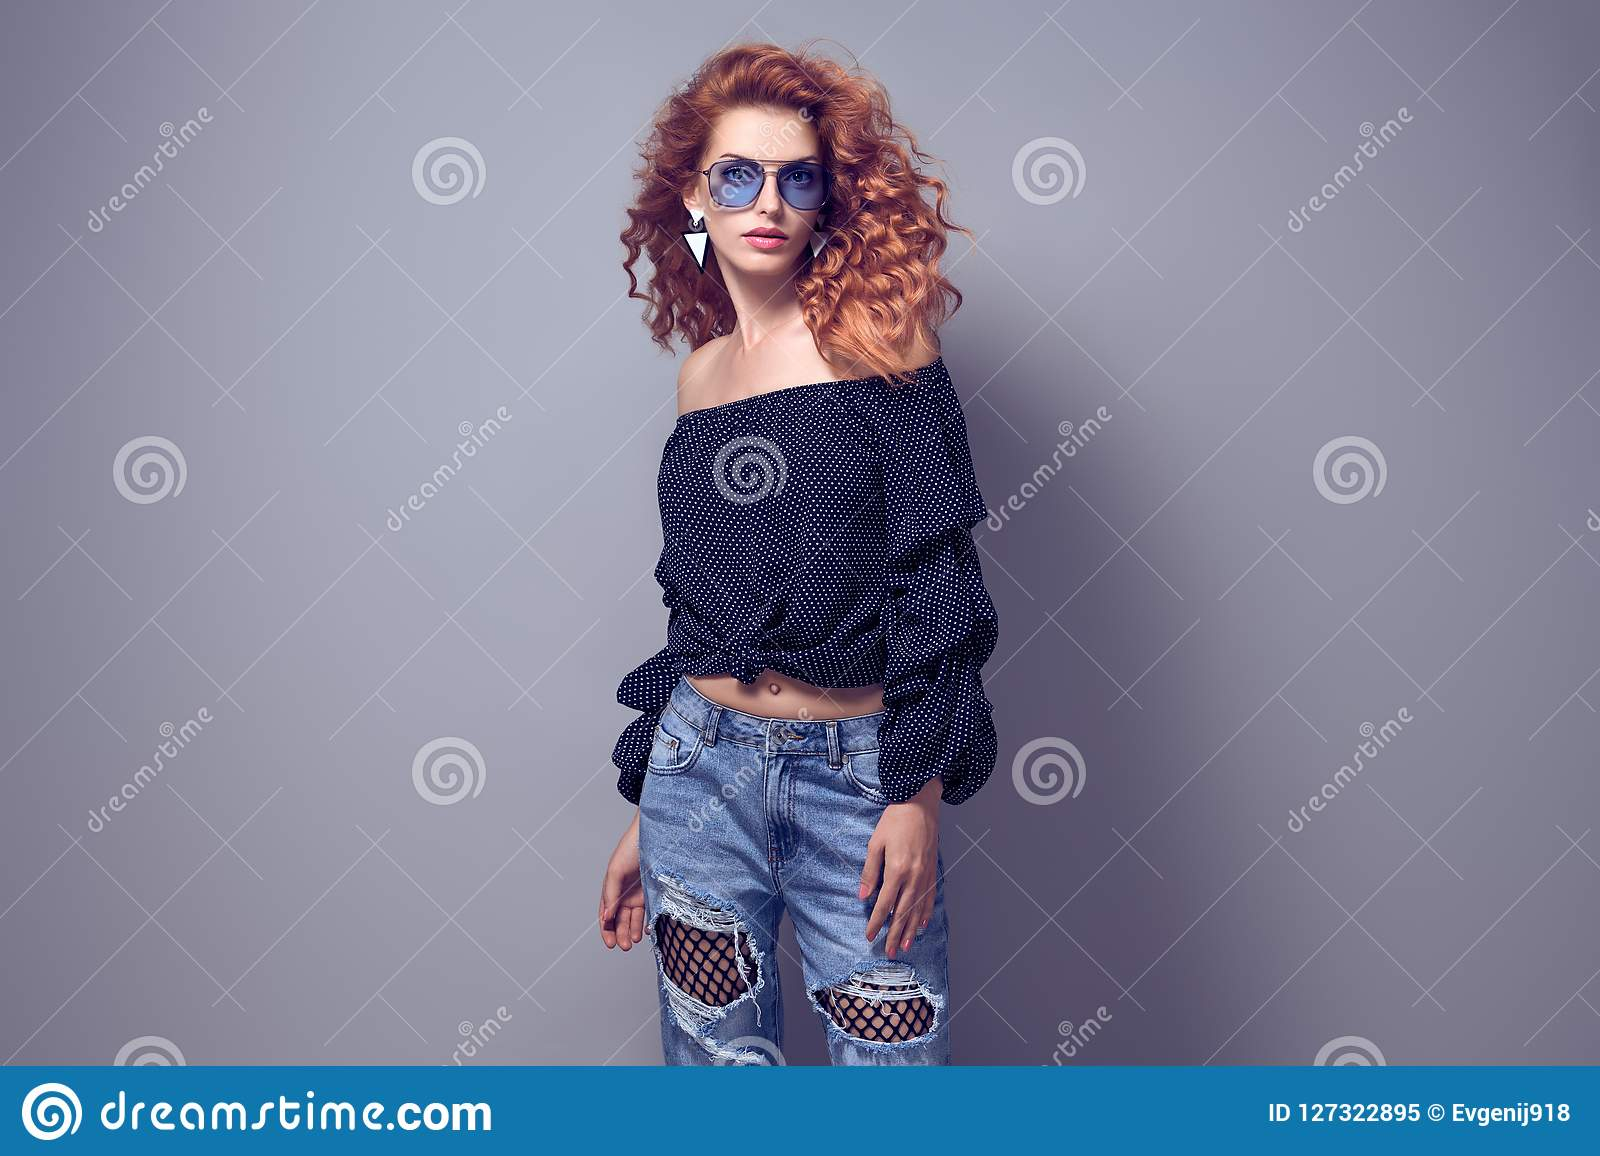 fcef3cef7243 Adorable Redhead Woman In Studio. Trendy Outfit Stock Image - Image ...